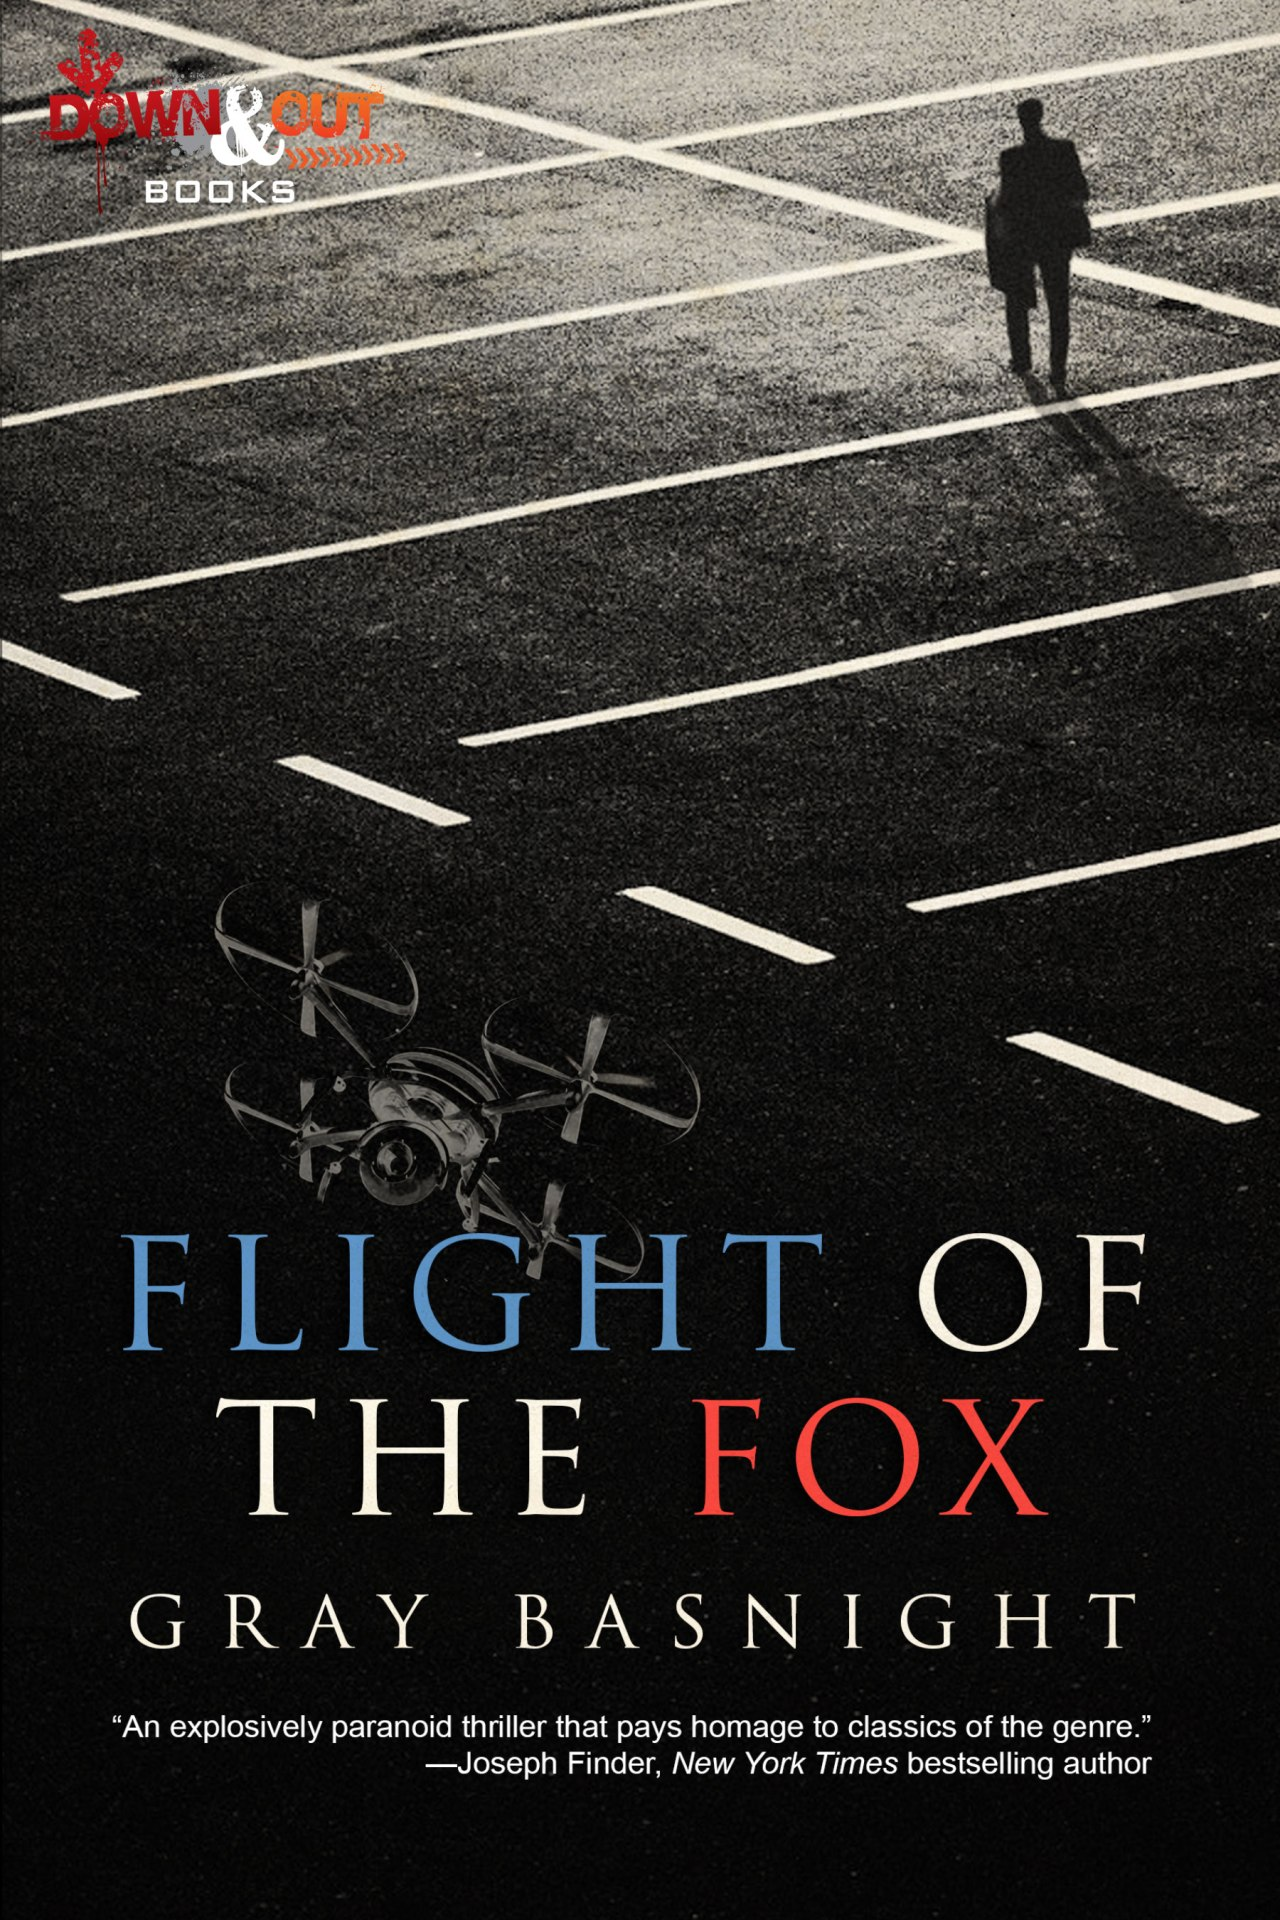 Gray Basnight: Flight of the Fox